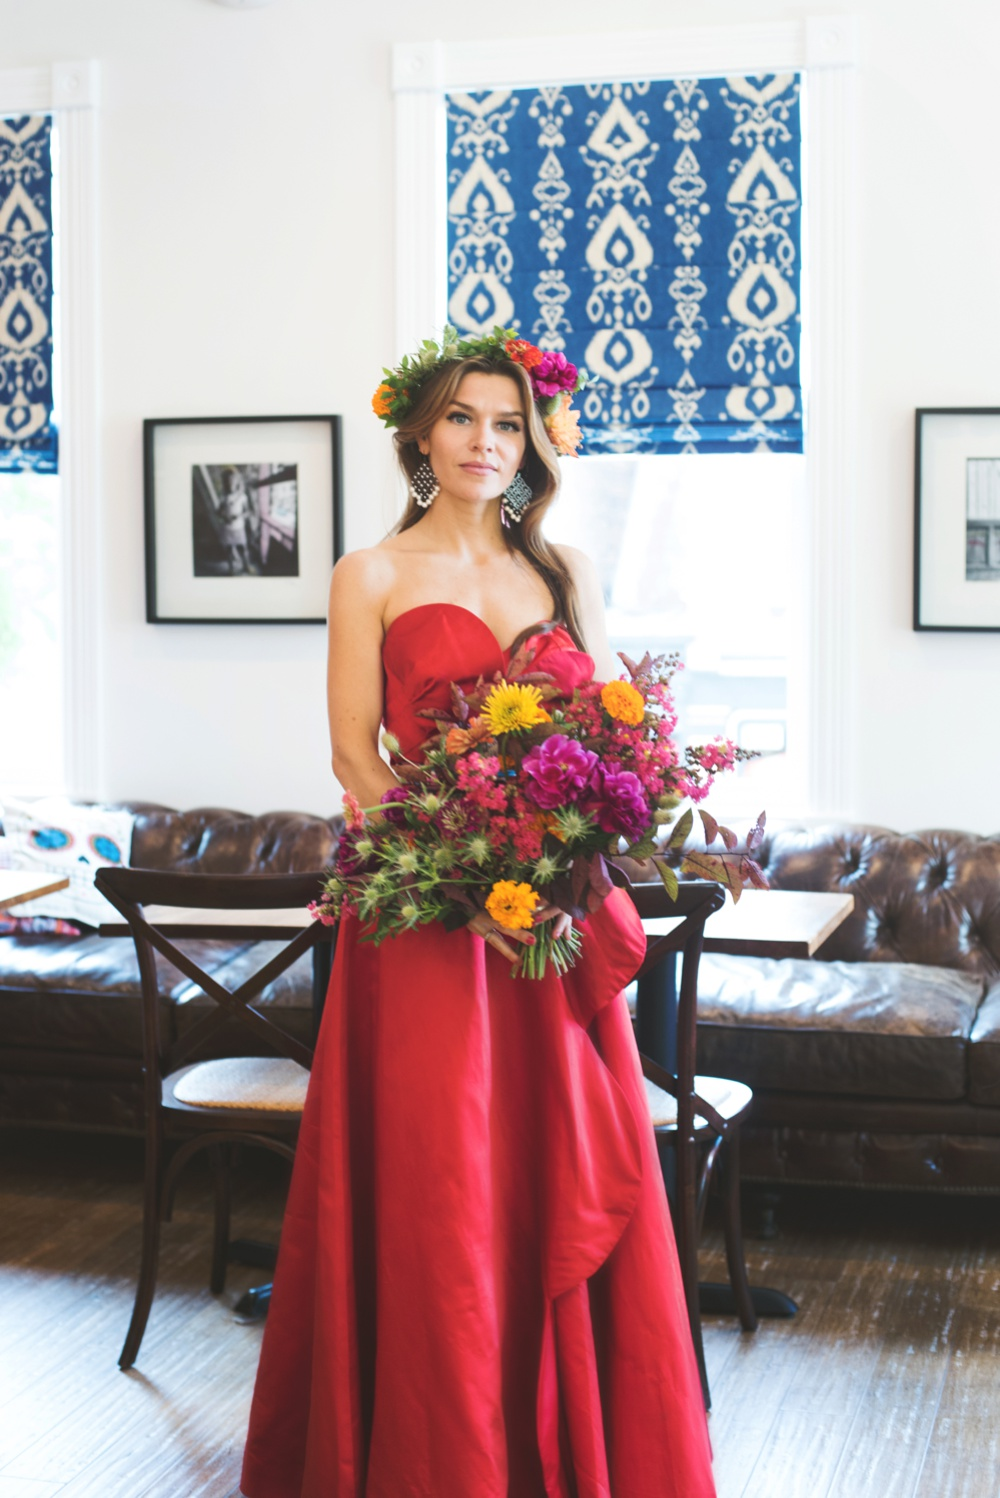 Frida_covington_wedding_2981.jpg